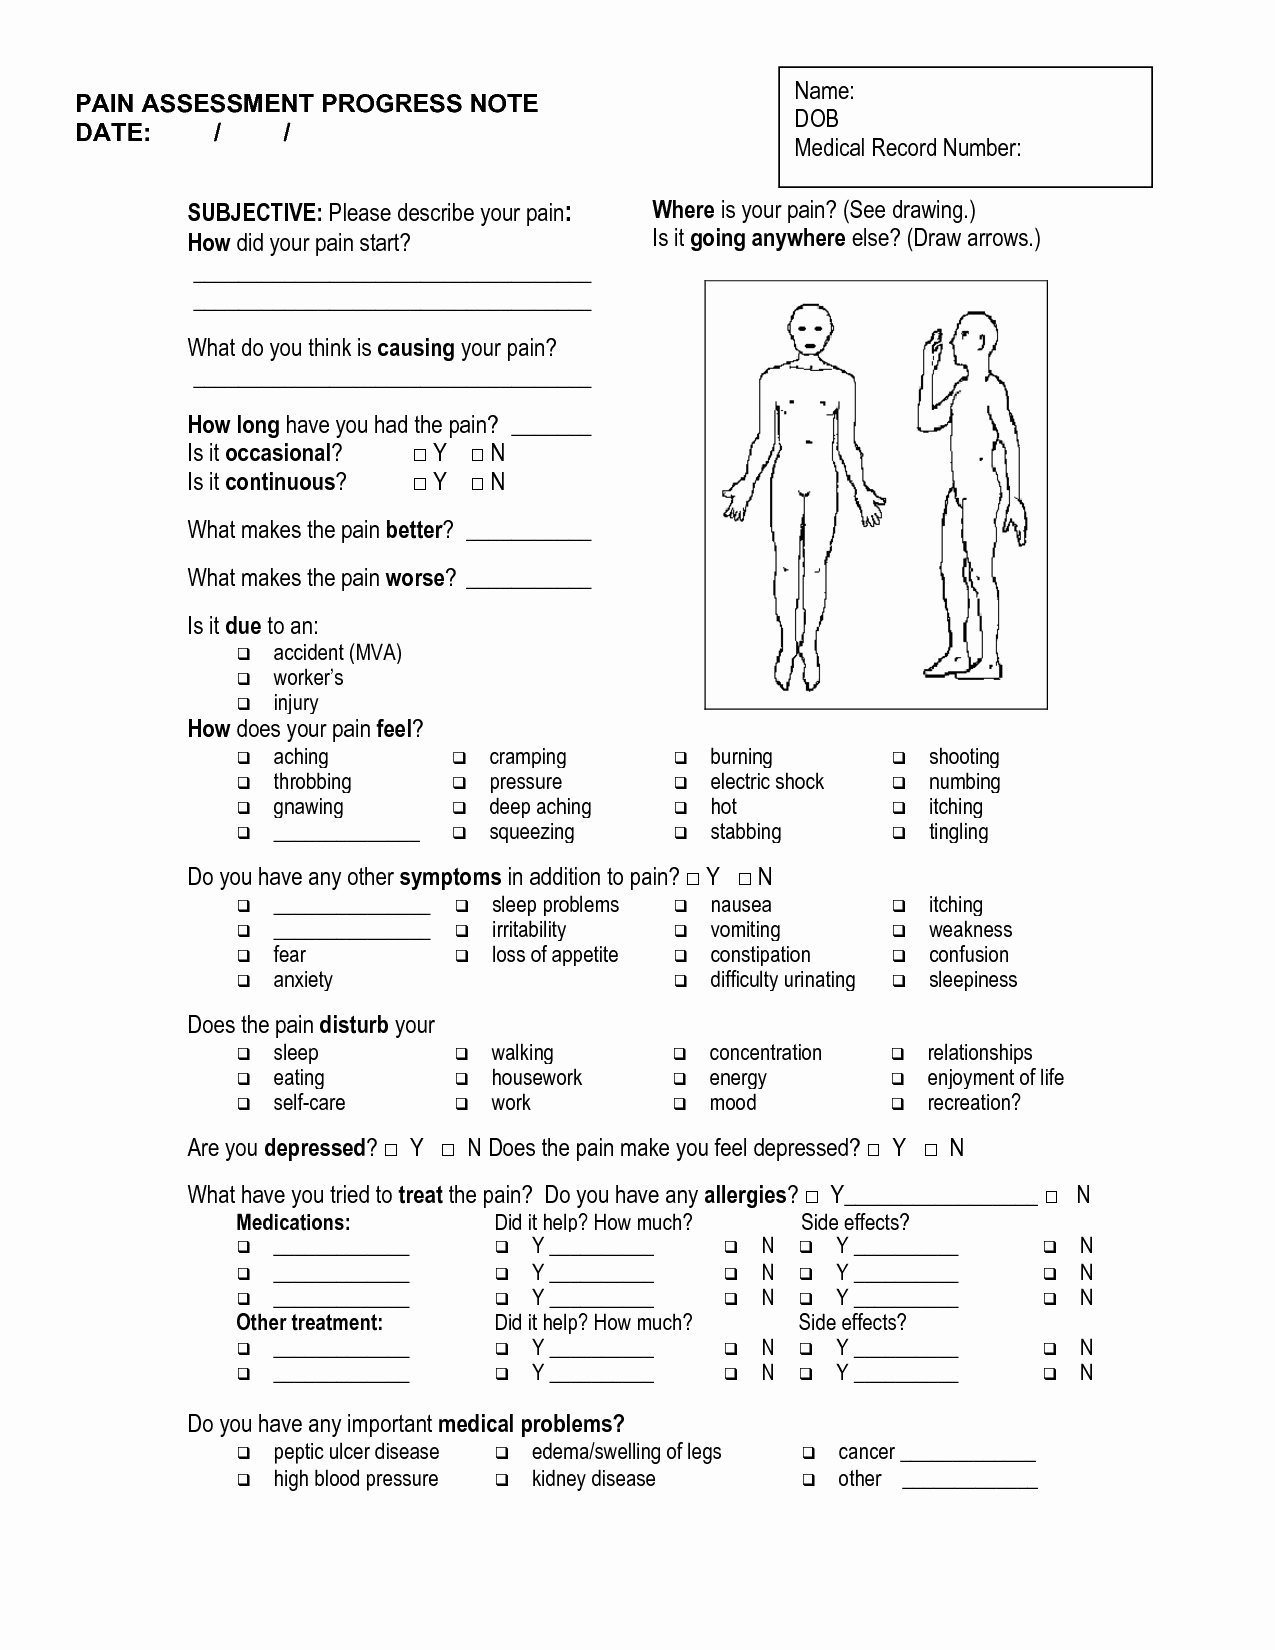 Acupuncture Intake form Template Inspirational Massage soap Notes Template